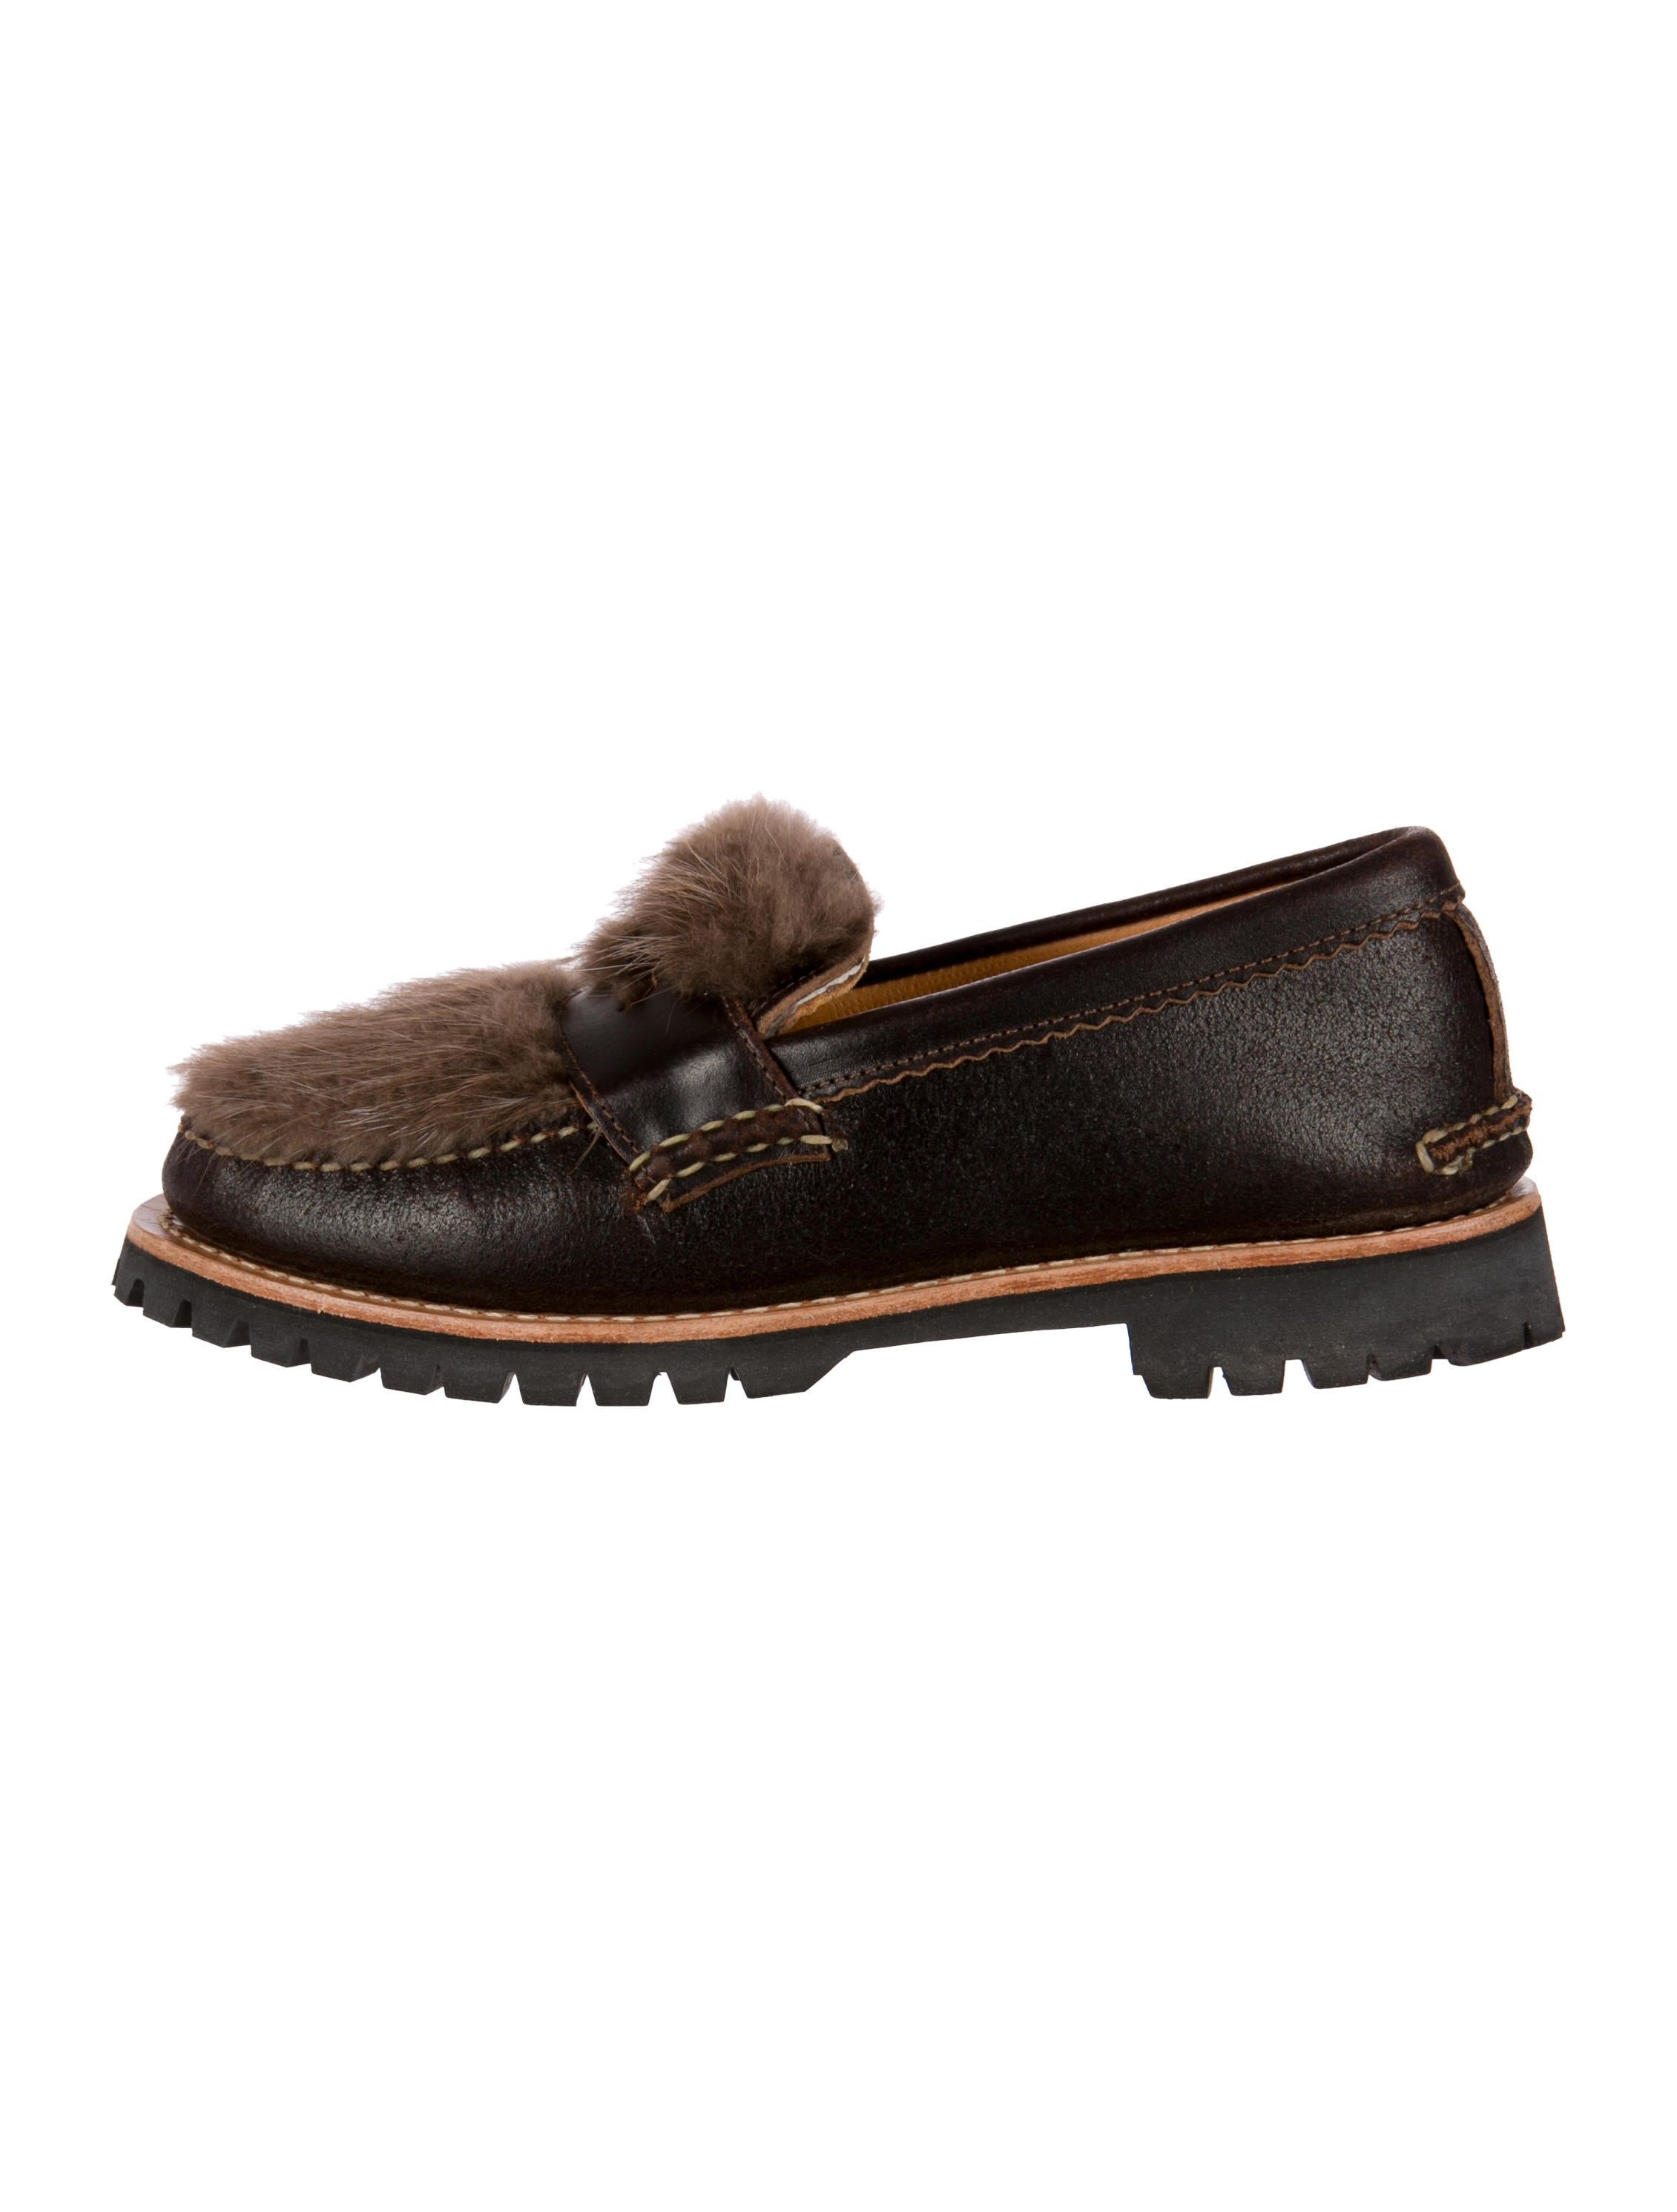 6aa086bf8c0 Yuketen Fur-Trimmed Penny Loafers - Shoes - YKT20017